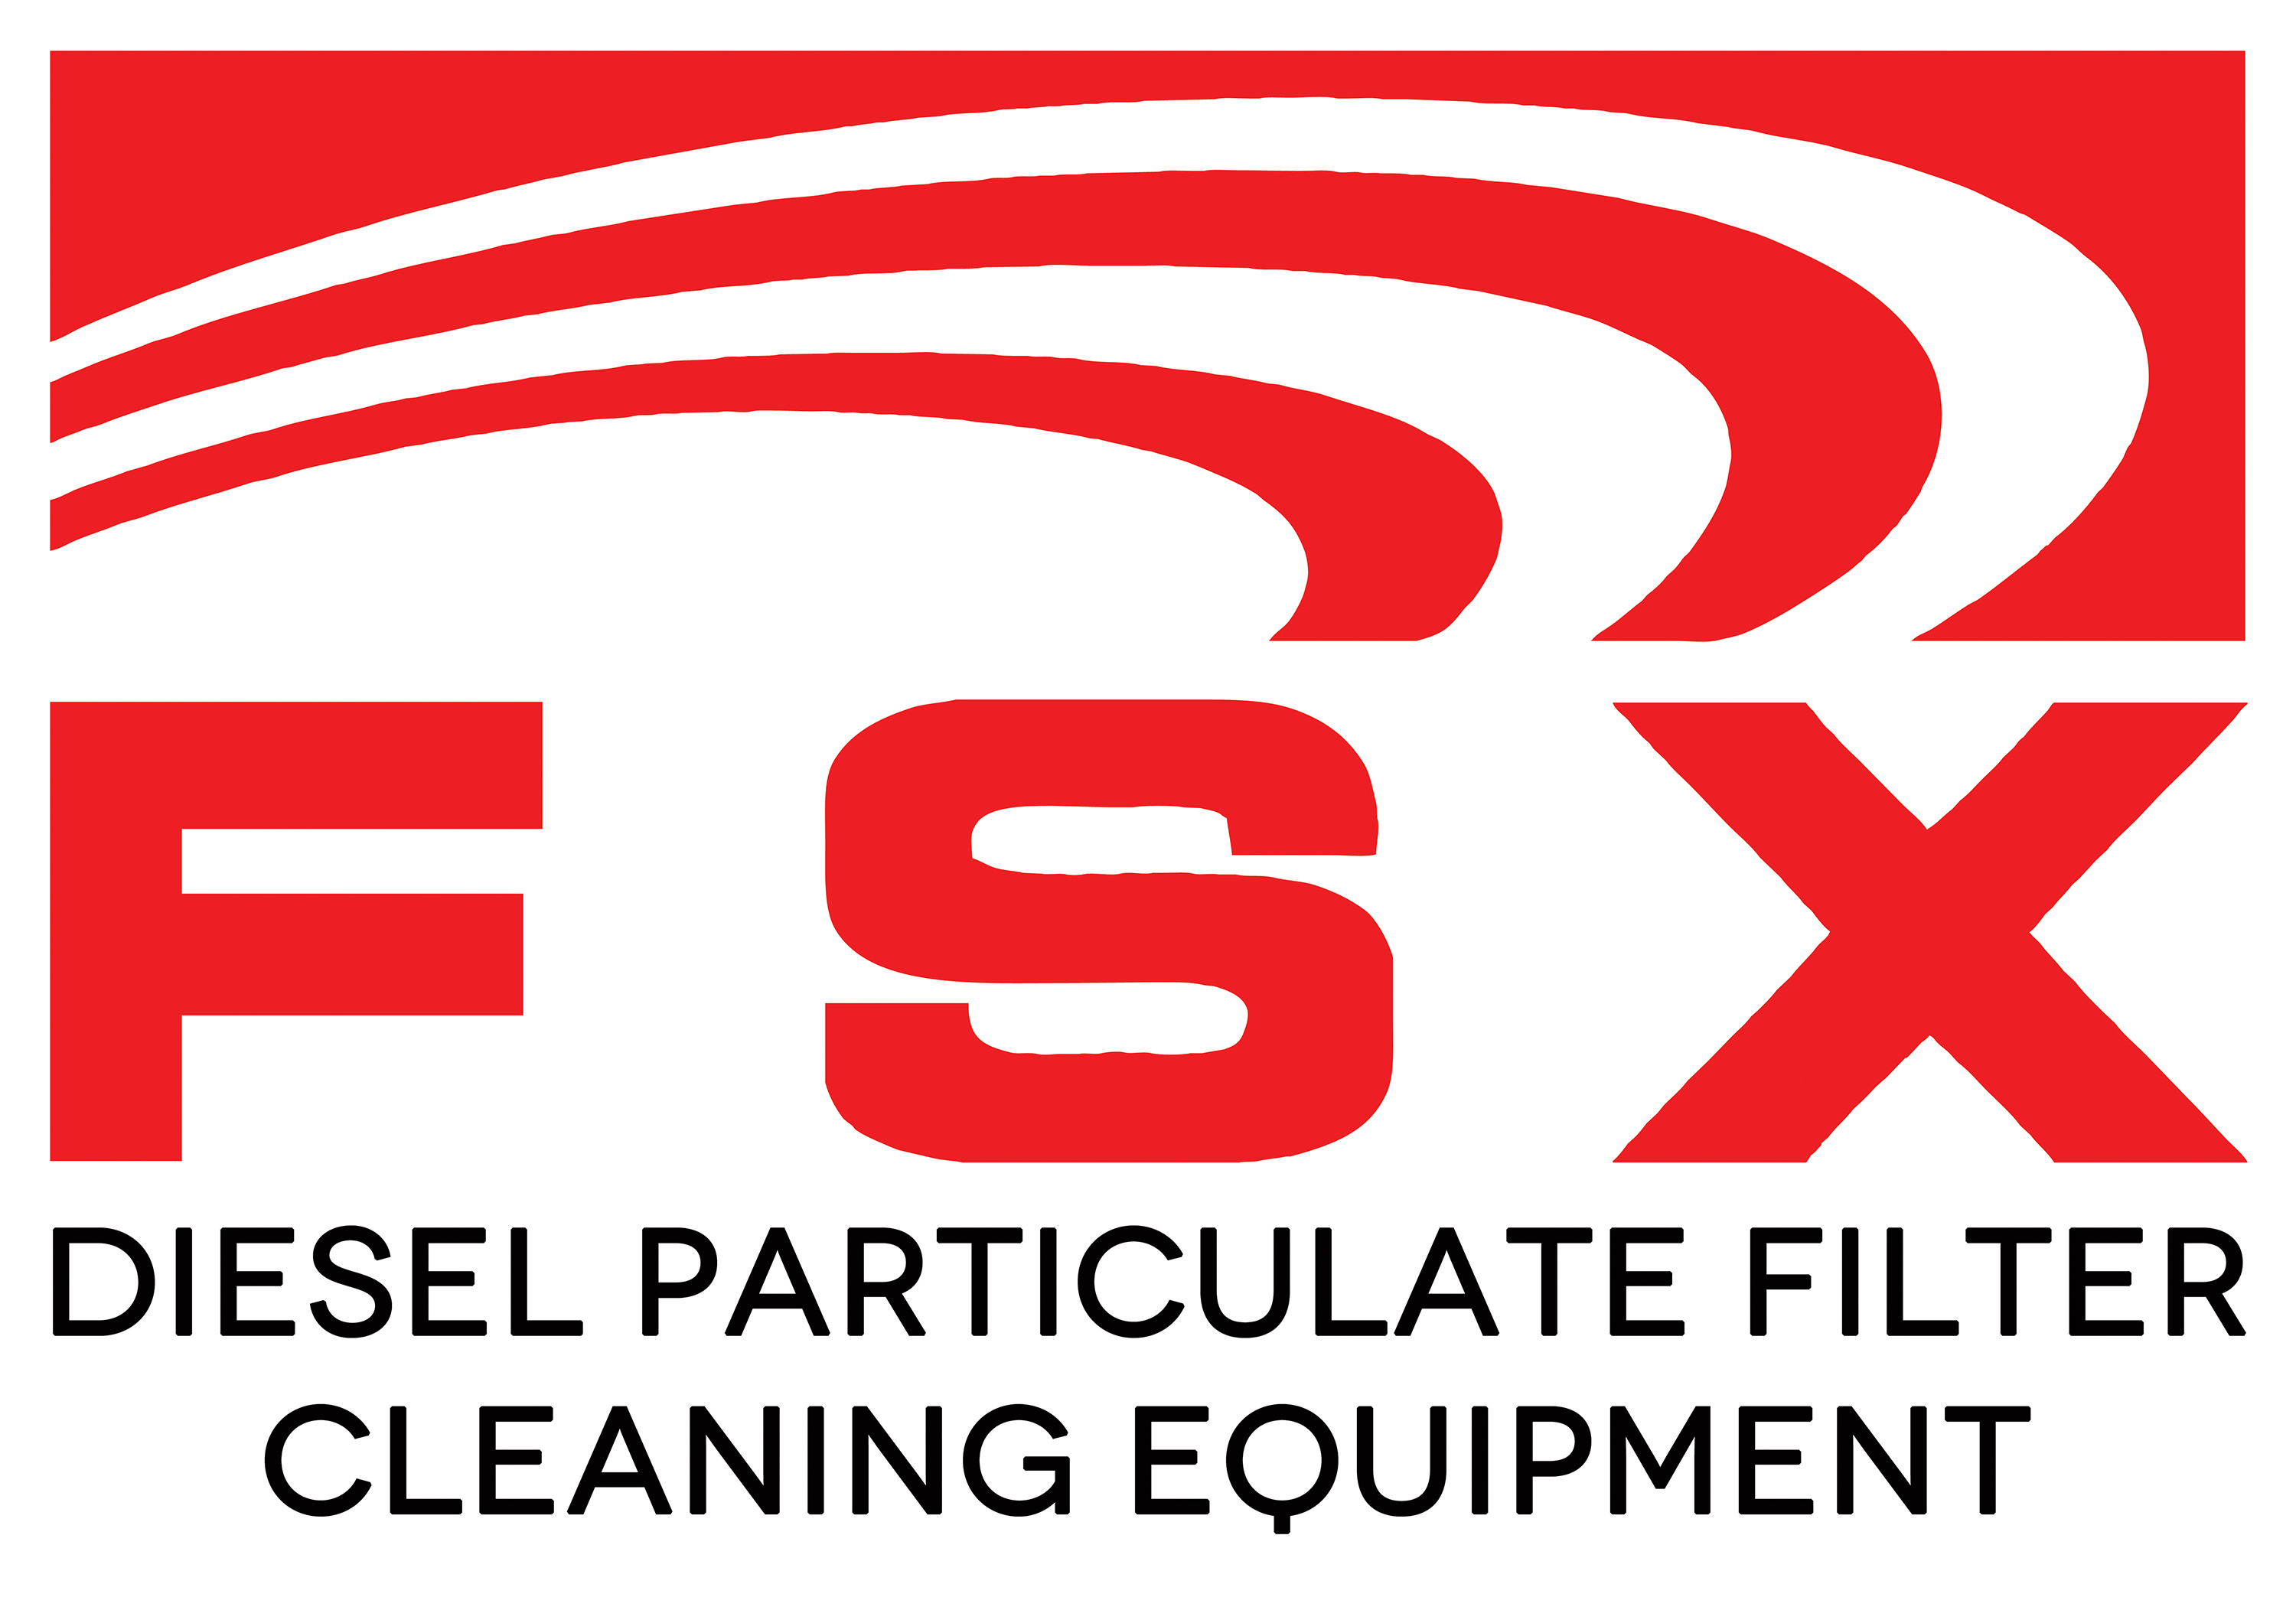 FSX Equipment, Inc. Photo